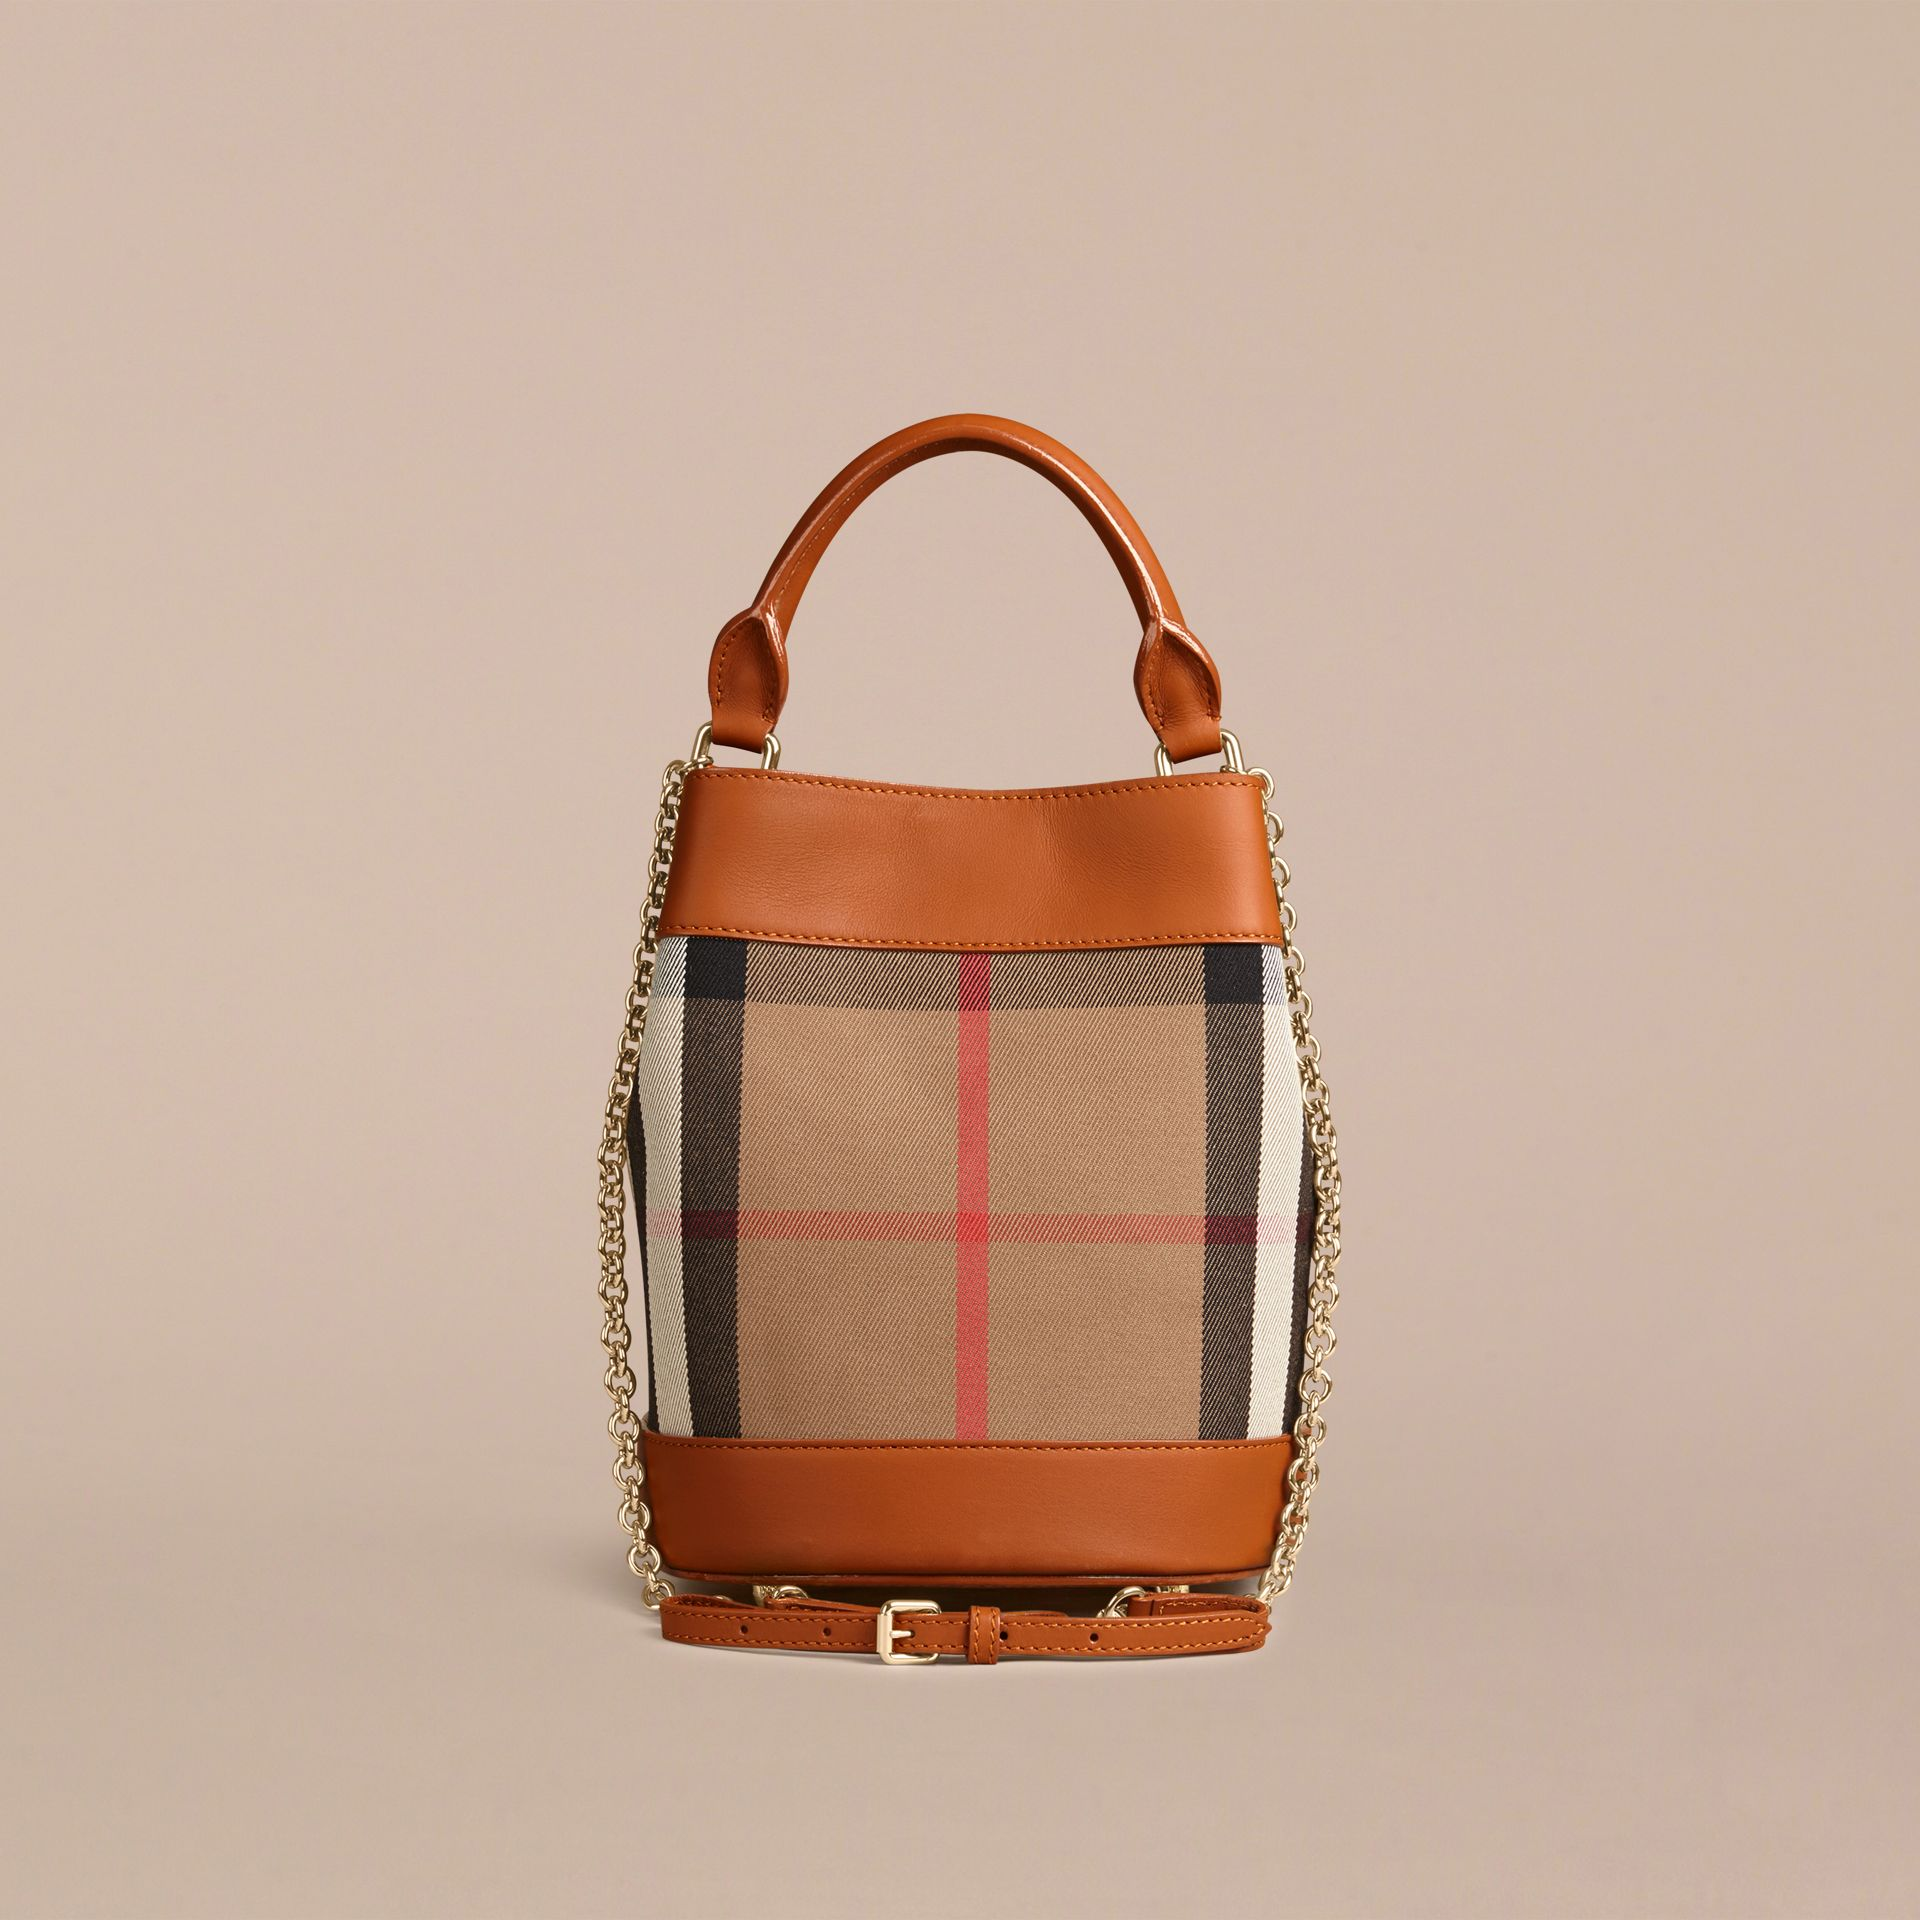 Toffee clair Petit sac Burberry Bucket en coton House check et cuir Toffee Clair - photo de la galerie 3